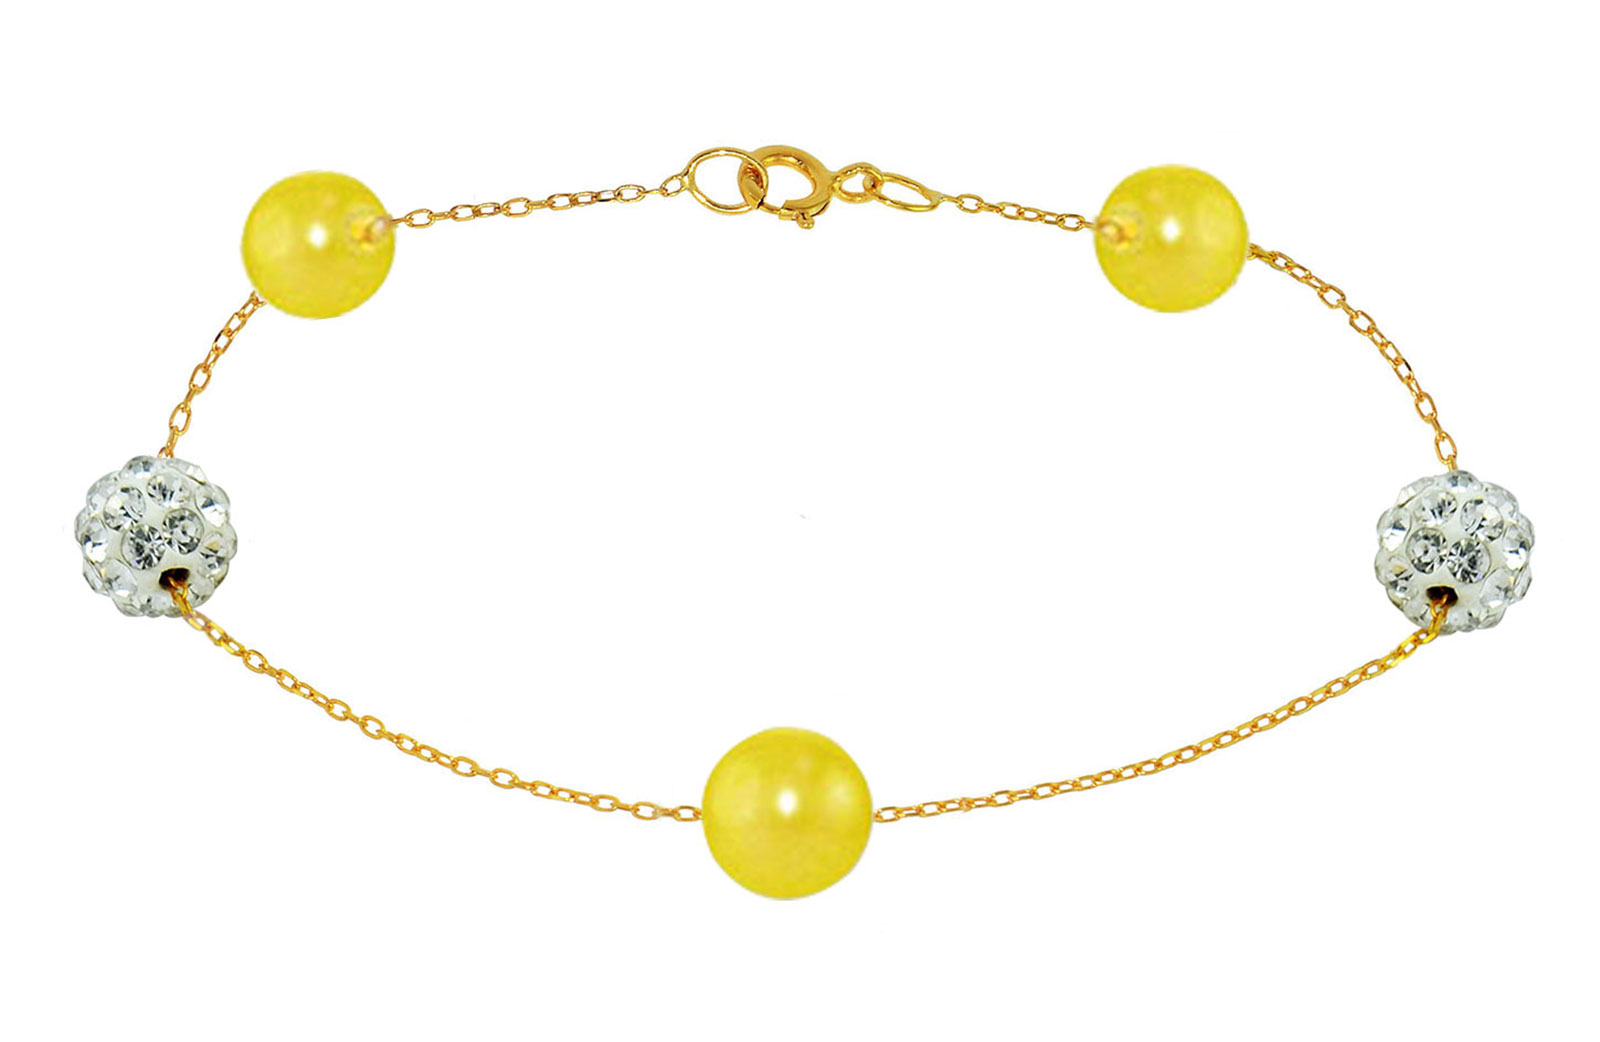 Vera Perla 18K Solid Gold Gradual Built-in 5-6mm Yellow Pearls and Crystal Ball Bracelet